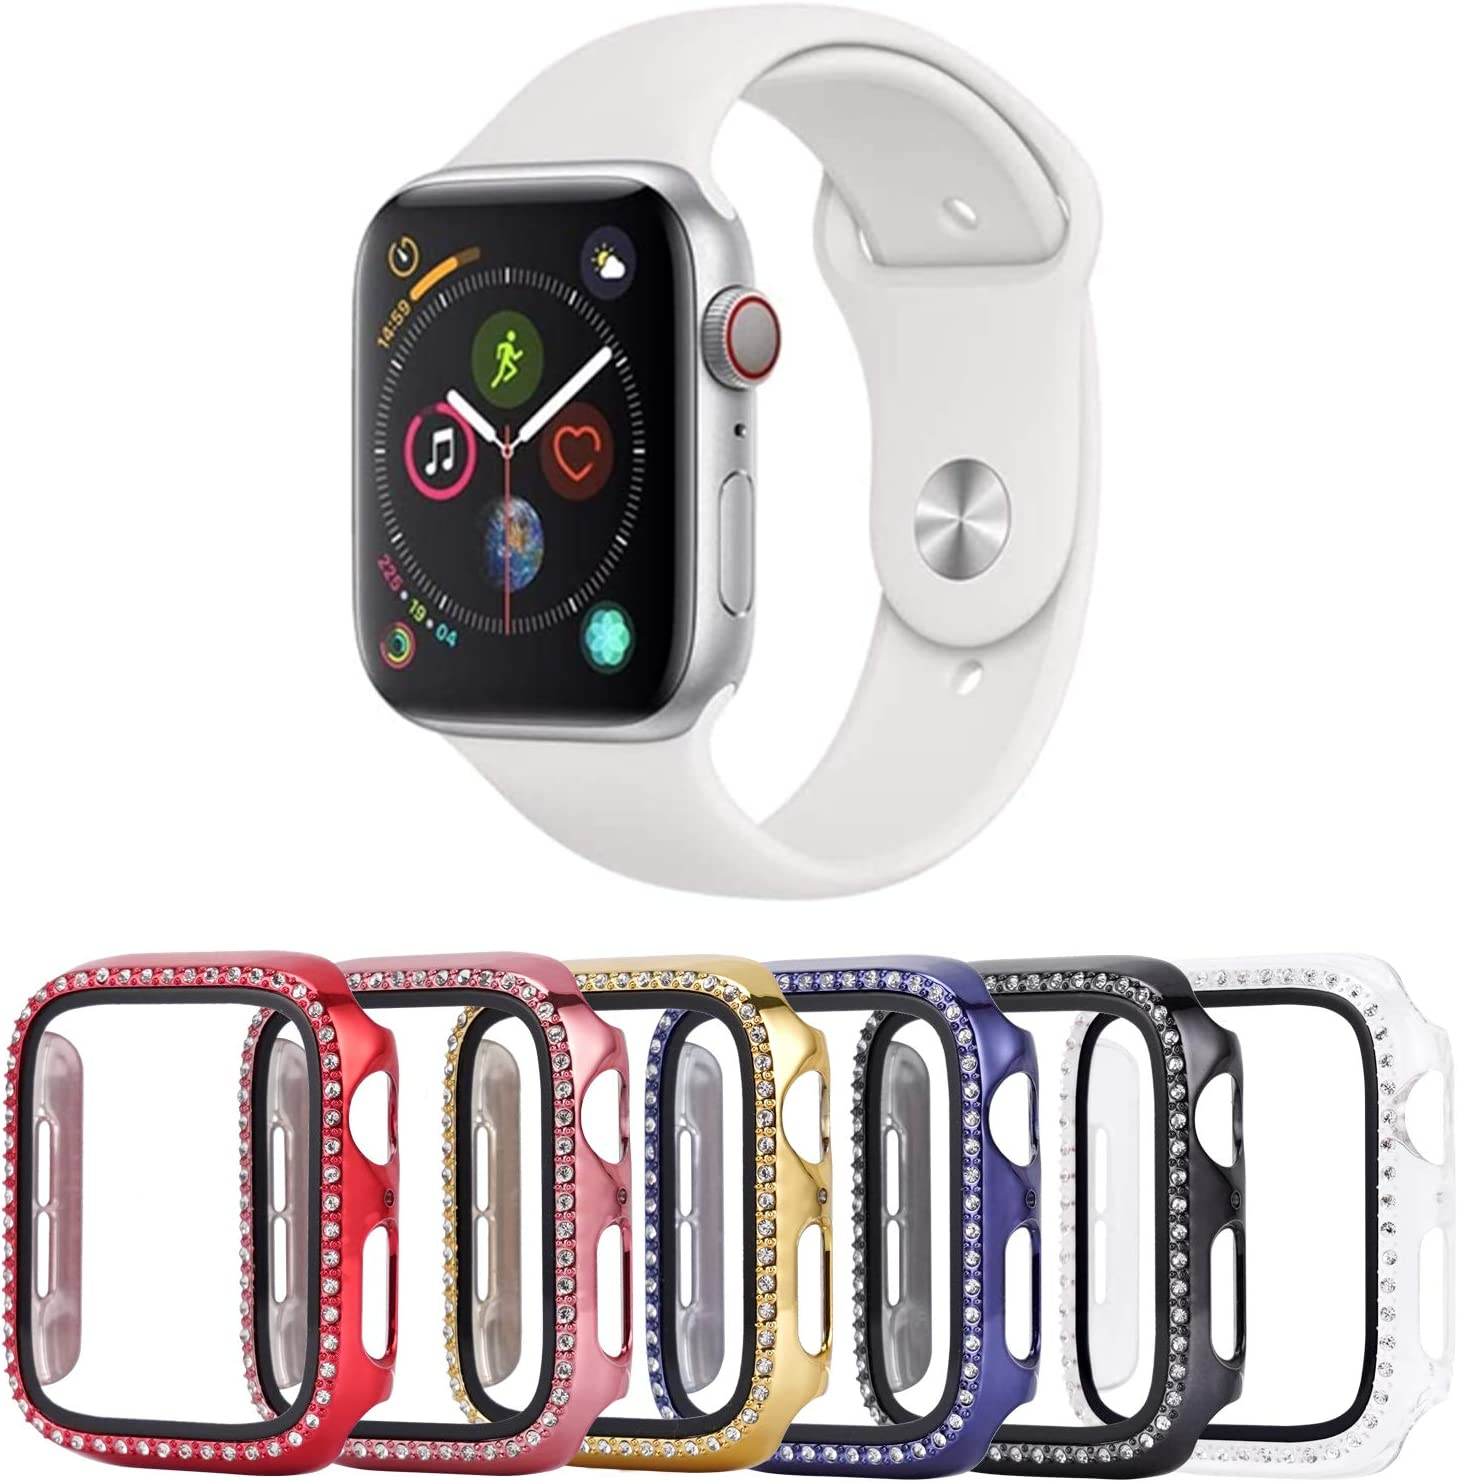 Tranesca 6 Pack 40mm Bling Case with Built-in Tempered Glass Screen Protector Compatible with Apple Watch Series 4/5/6/SE (Red,Rose Gold,Gold,Blue,Black,Clear)